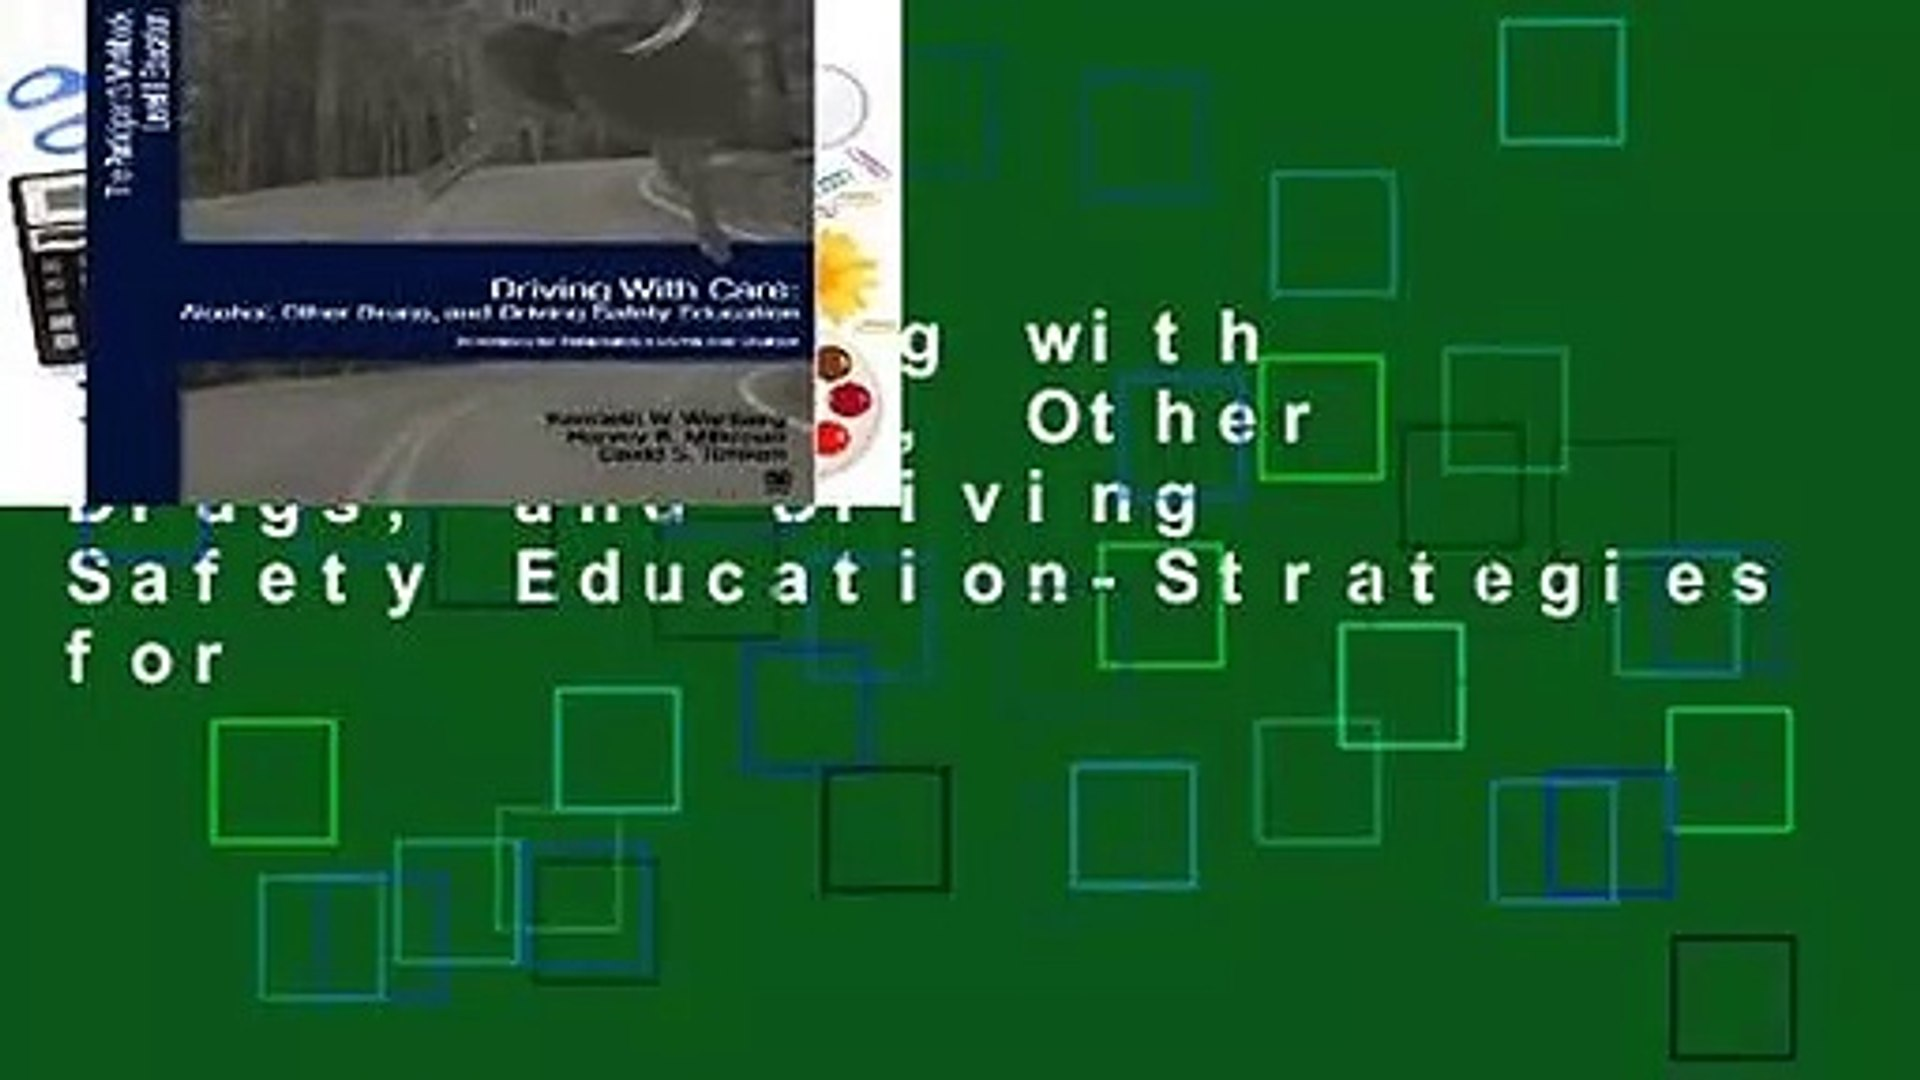 Online Driving with Care: Alcohol, Other Drugs, and Driving Safety Education-Strategies for